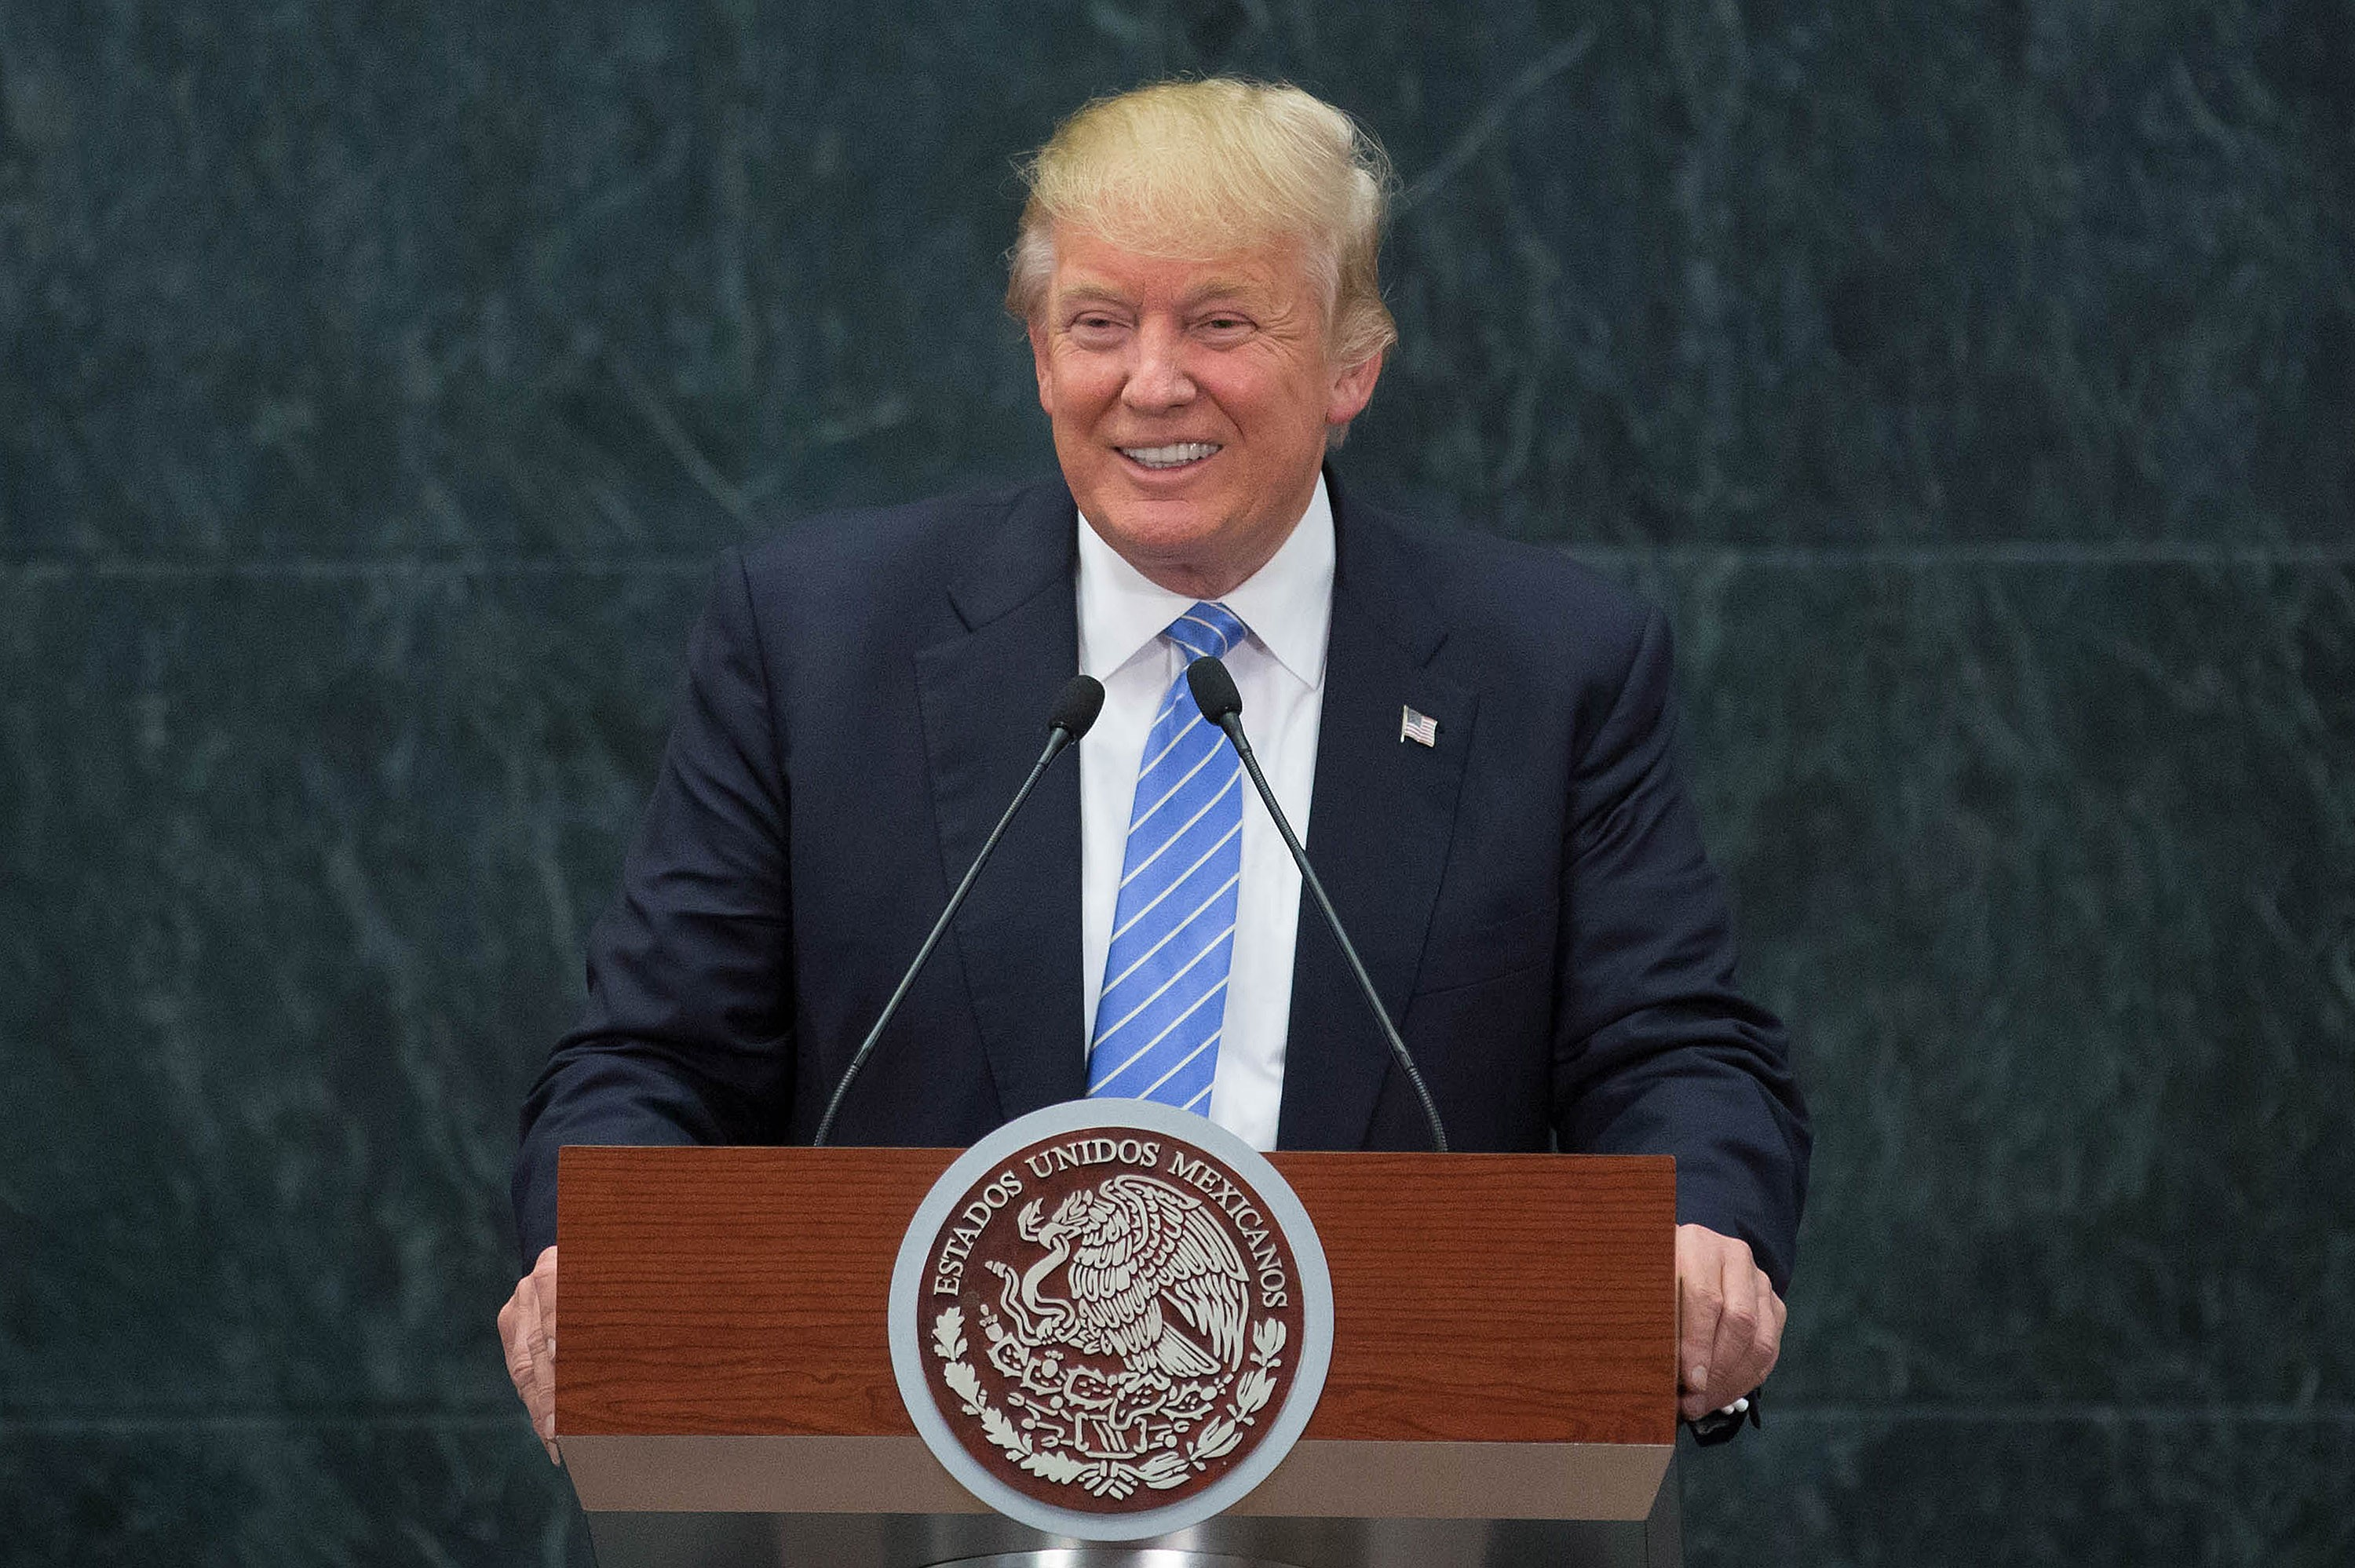 US Republican presidential candidate, Donald Trump speaks during a press conference with President of Mexico Enrique Pena Nieto (not seen) at Los Pinos presidential residence, in Mexico City, Mexico on August 31, 2016.